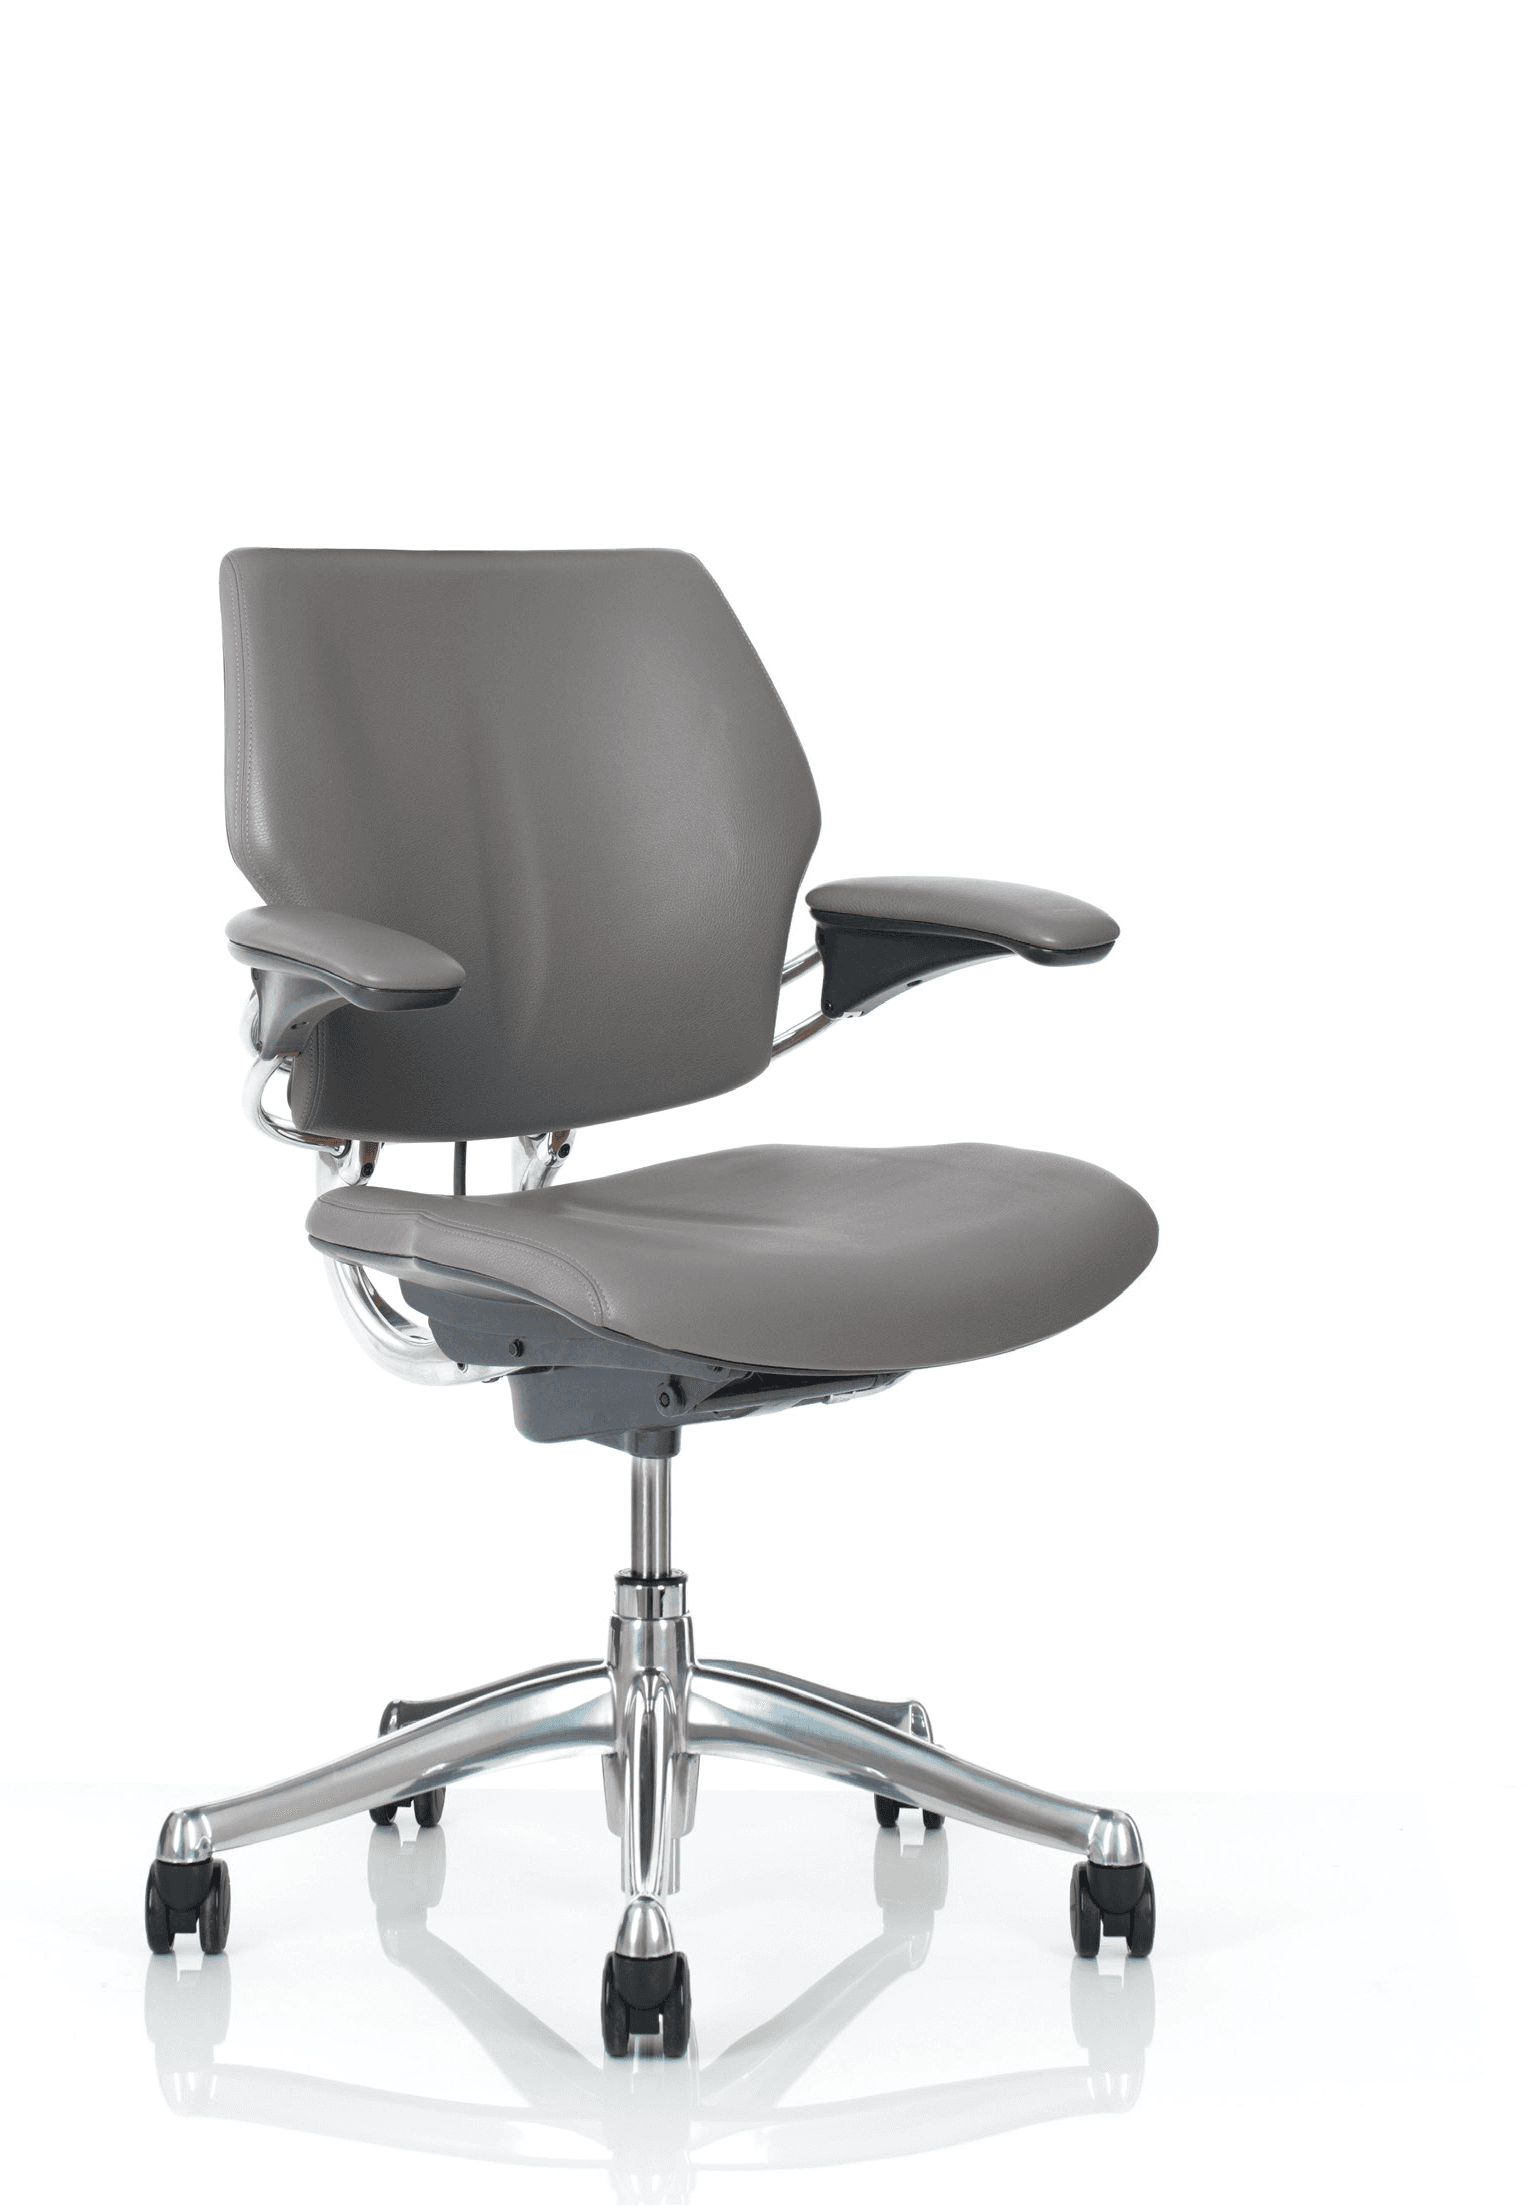 diffrient smart chair sew covers for wedding reception humanscale seating evosite control rooms